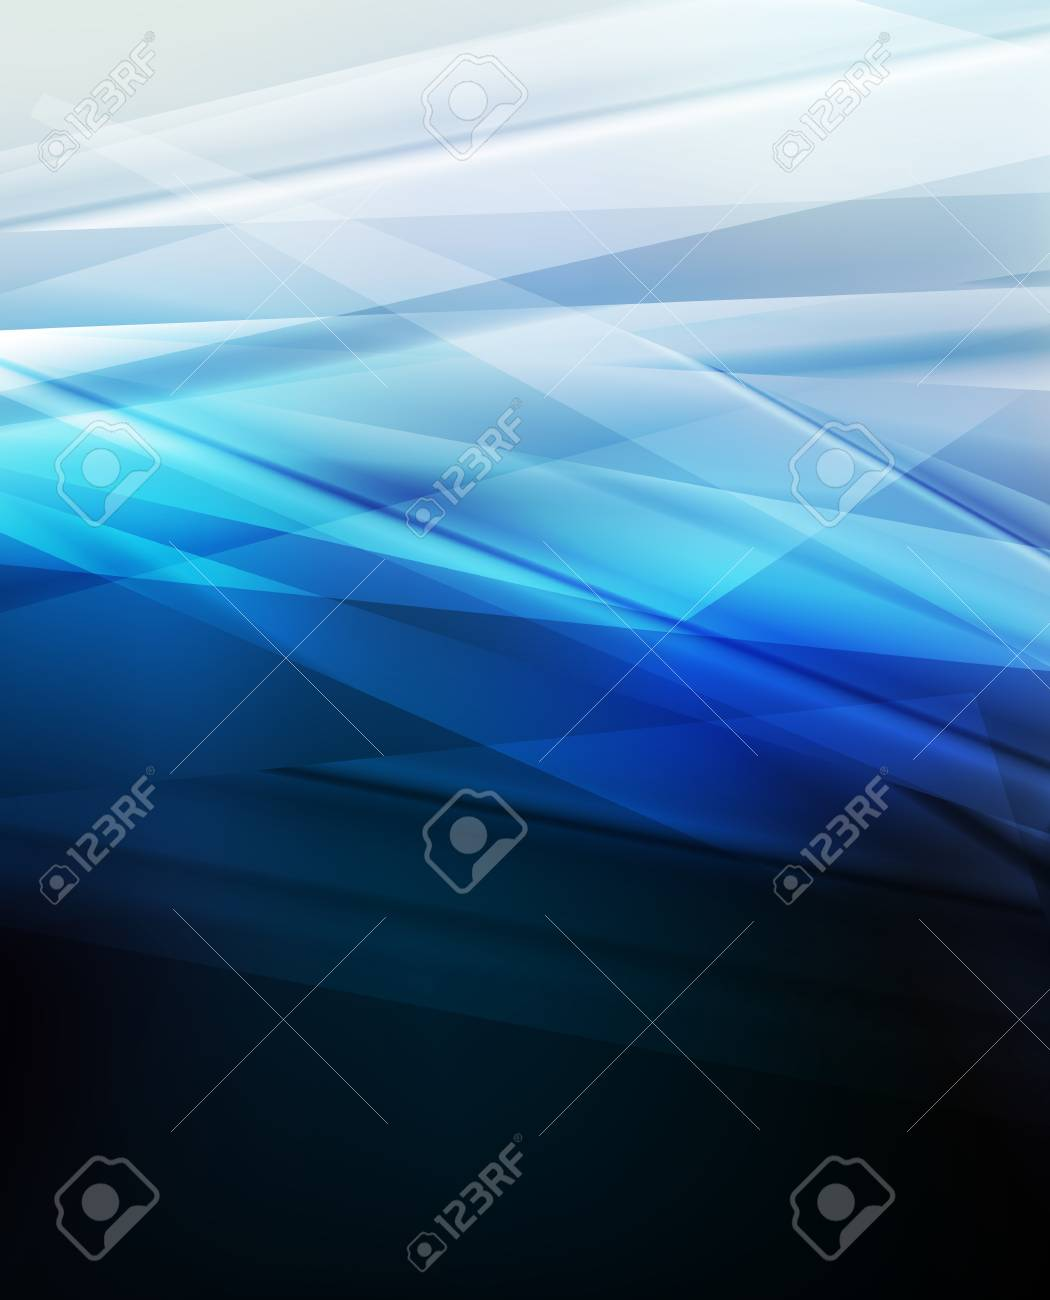 Blue abstract vector background concept with neon lines Stock Vector - 17408020